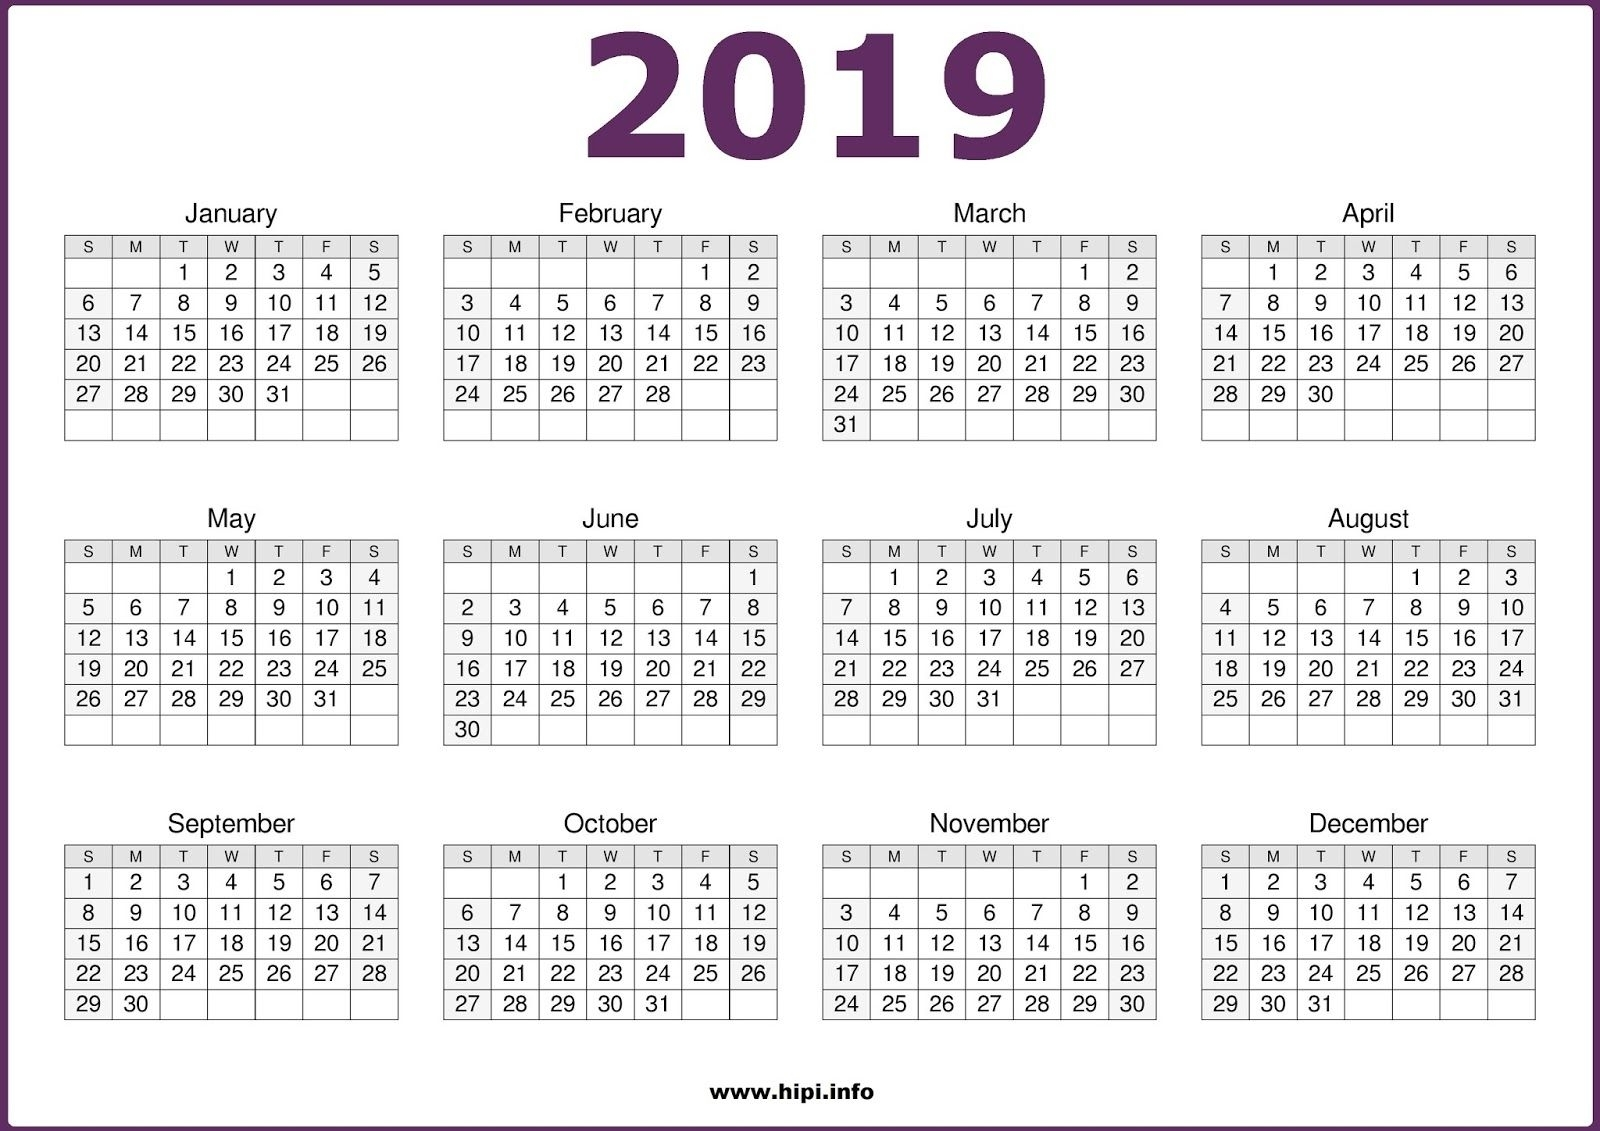 2019 Calendar Printable | 2019 Printable Calendars | Calendar 2019 with regard to 12 Month Calendar Printable Free